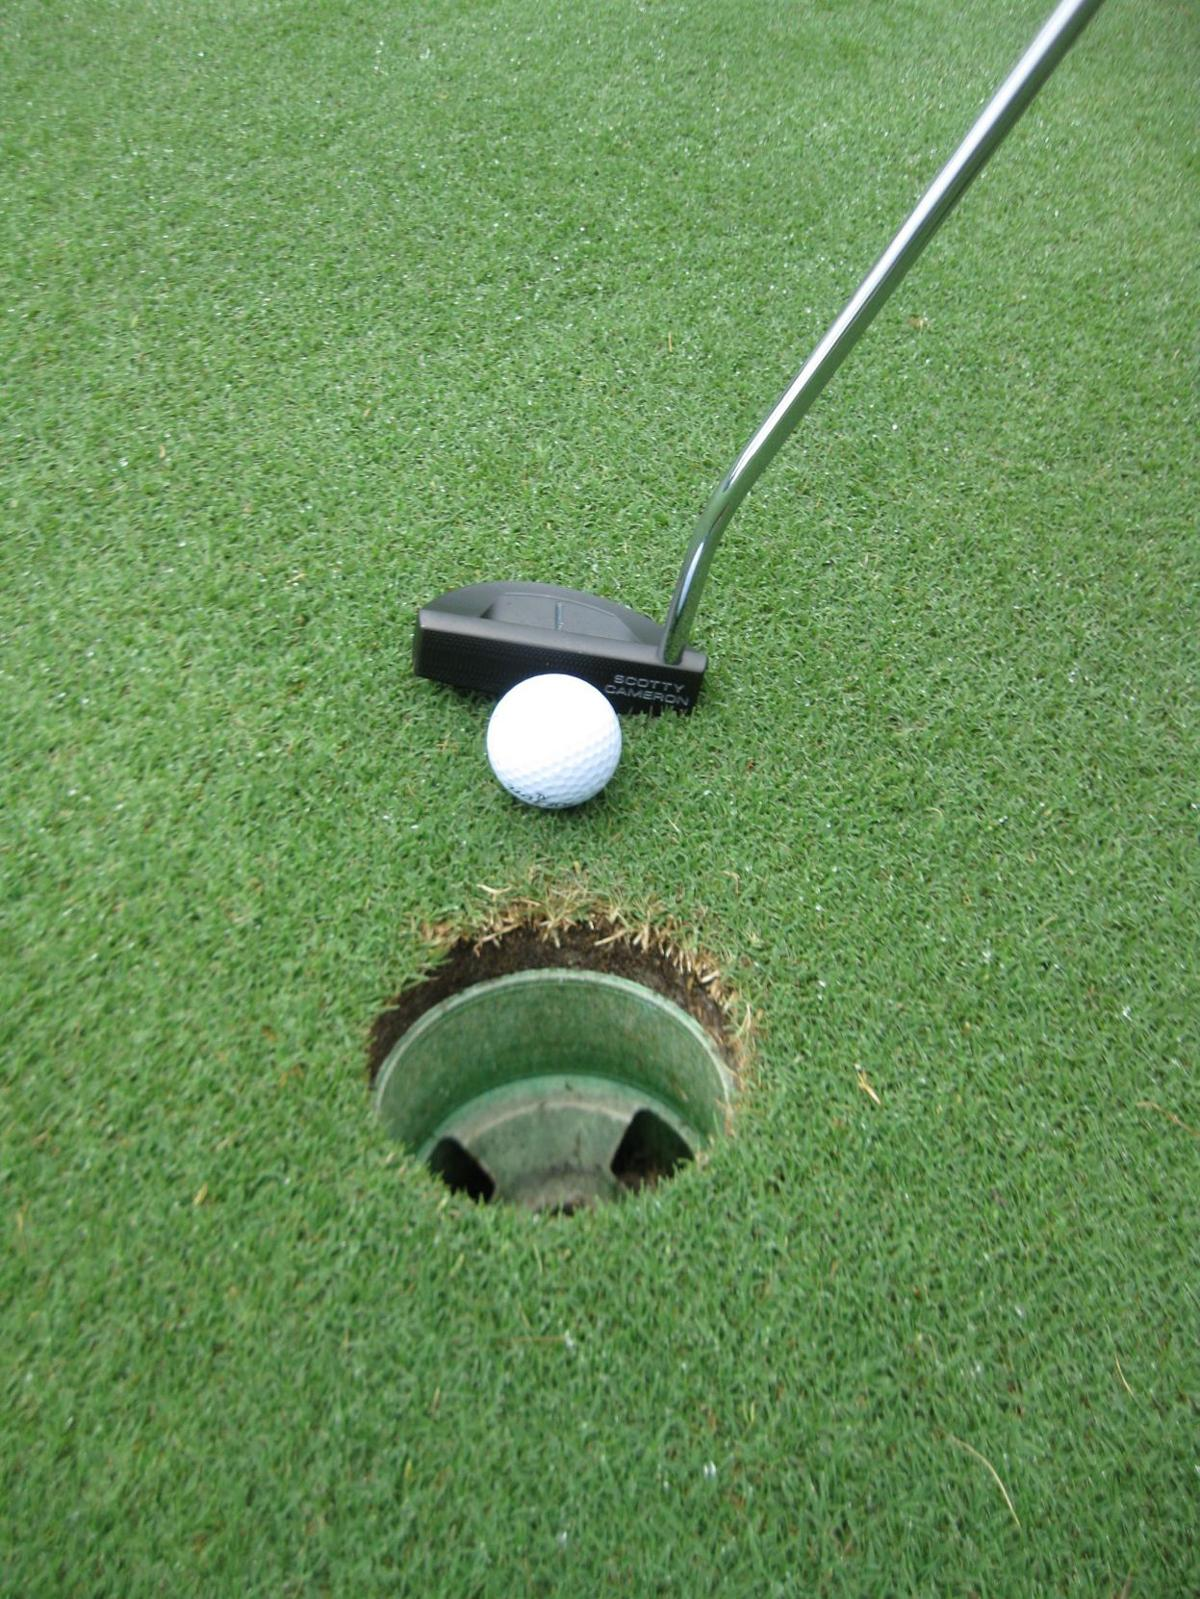 Upcoming golf events and holes in one